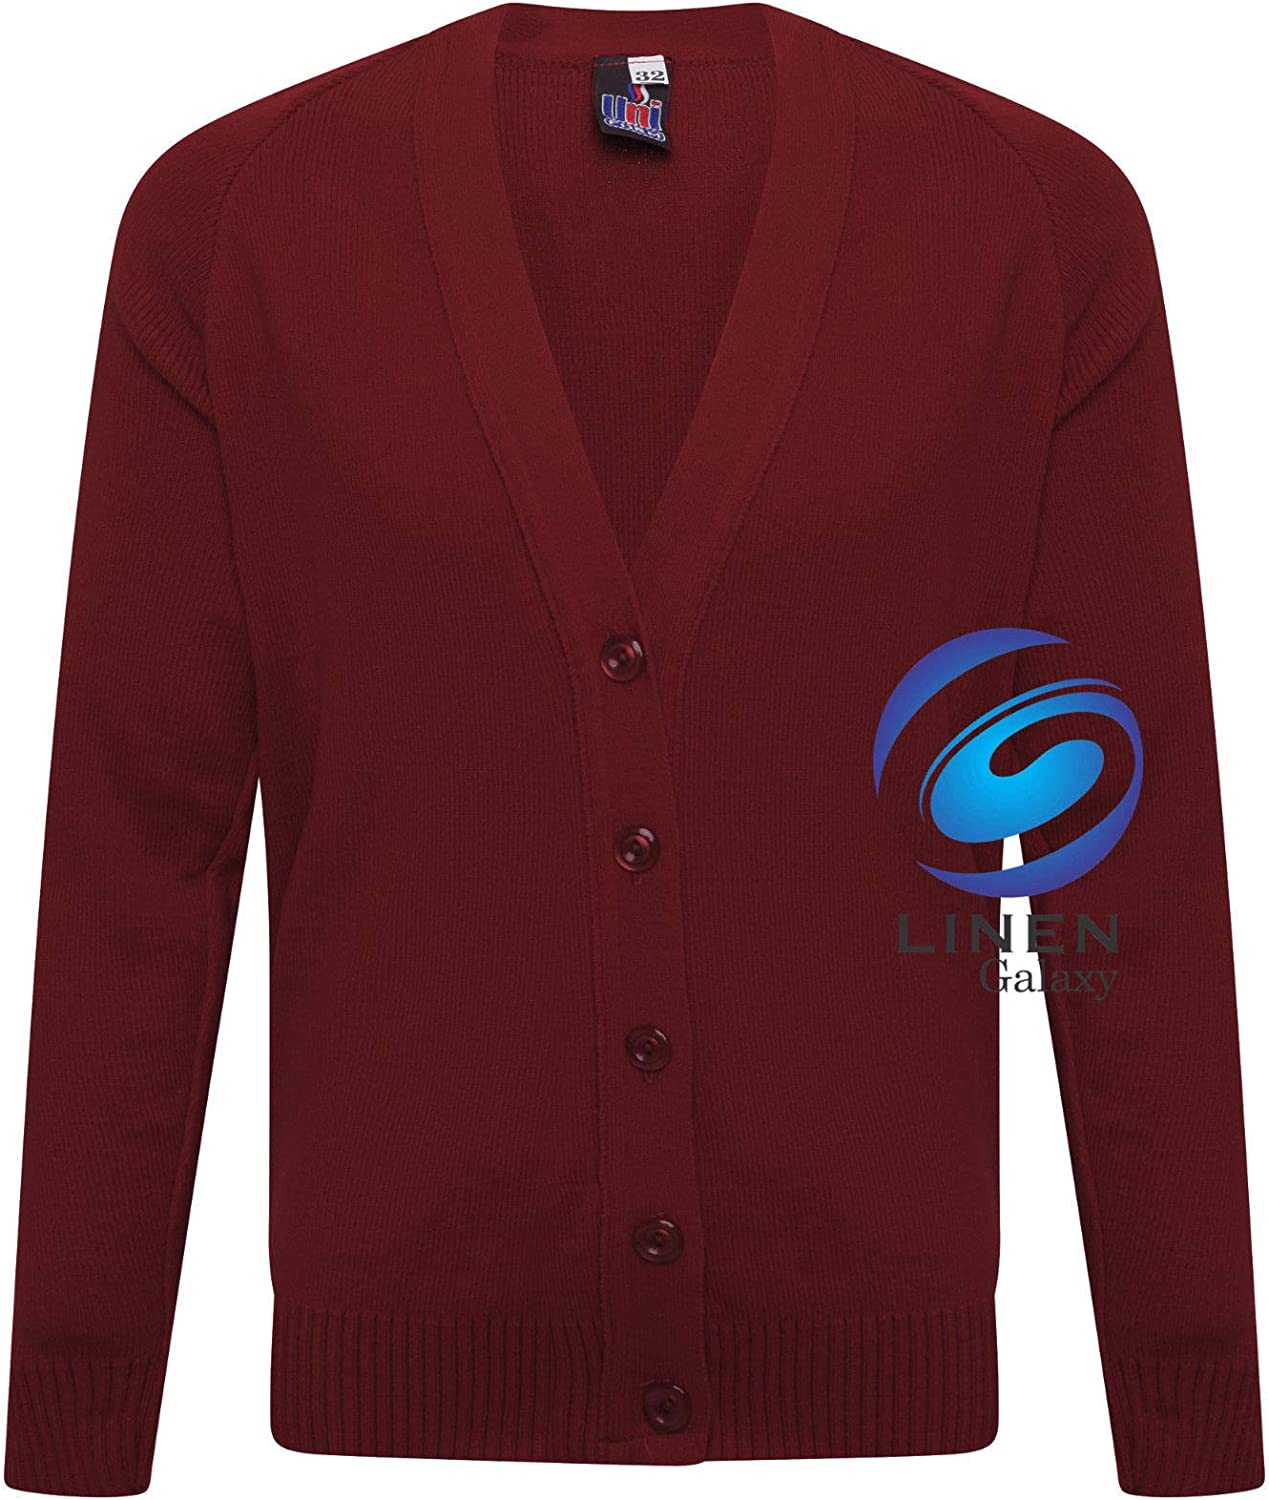 clicktostyles Kids Boys Girls School Uniform Knitted Cardigan V Neck Button UP Front Jumpers